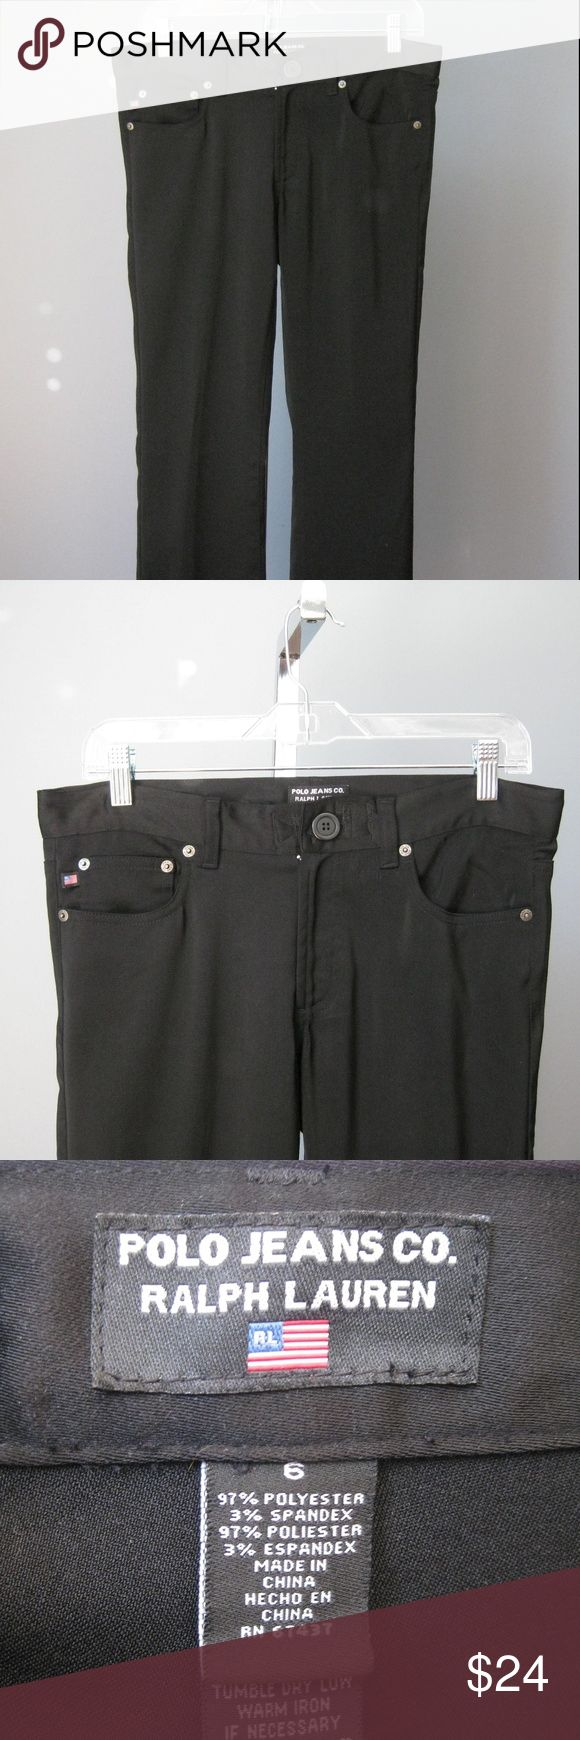 "Polo Jeans Smooth Black Jeans Ralph Lauren These black jeans are made of a very smooth almost knit fabric. Polo Ralph Lauren Size 6 Inseam 32""  Let me know if you need any other specific measurements. Thanks for looking! #22788 Polo by Ralph Lauren Jeans"